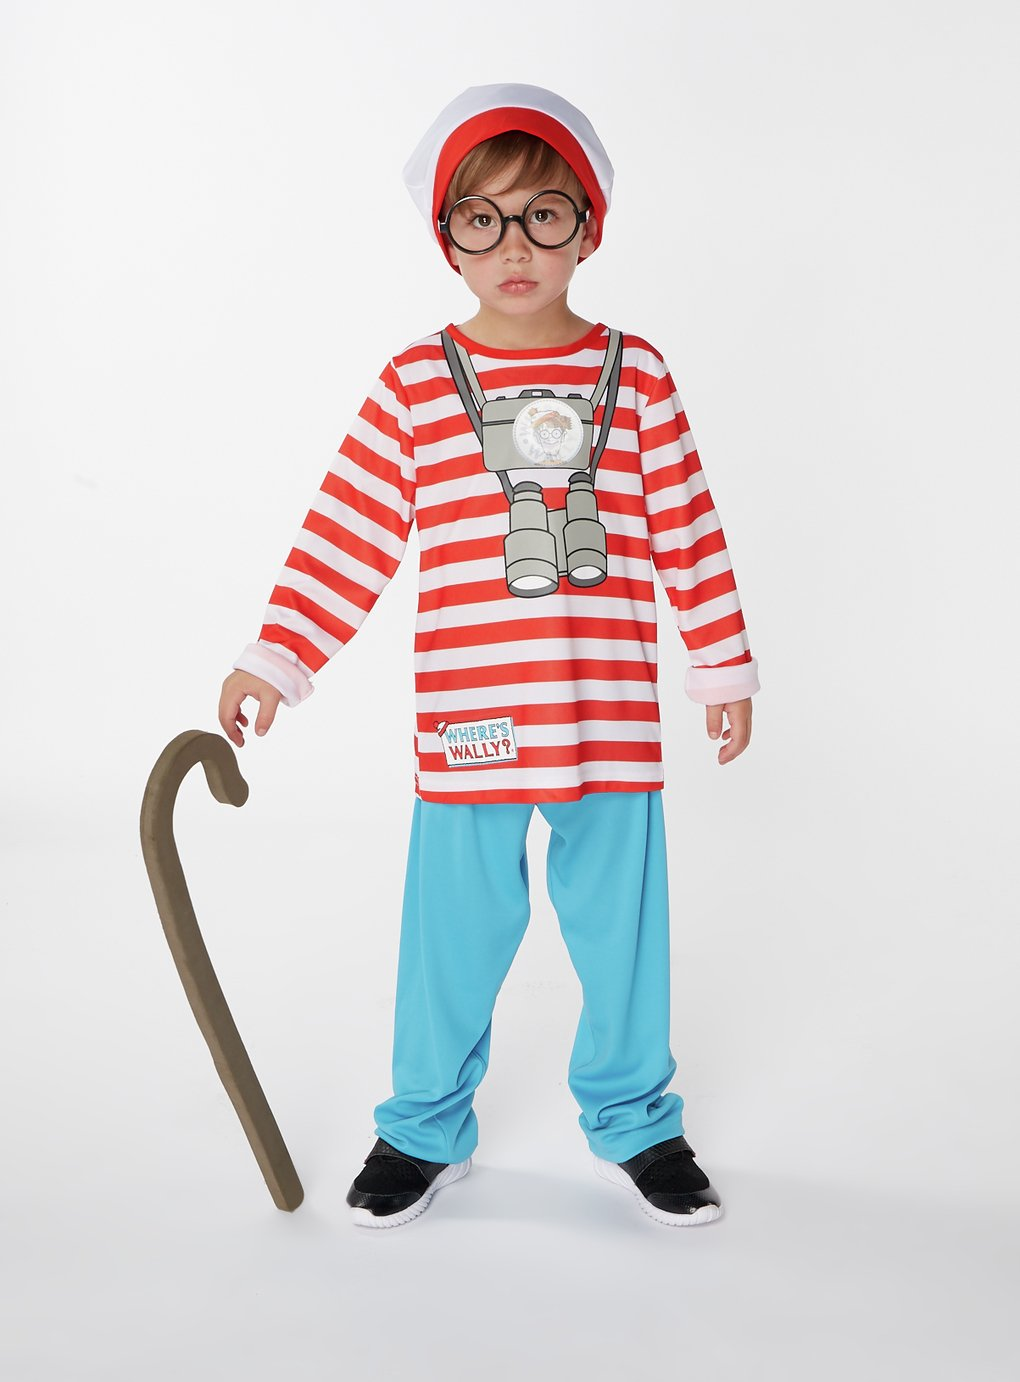 Where's Wally Fancy Dress Costume - 7-8 Years